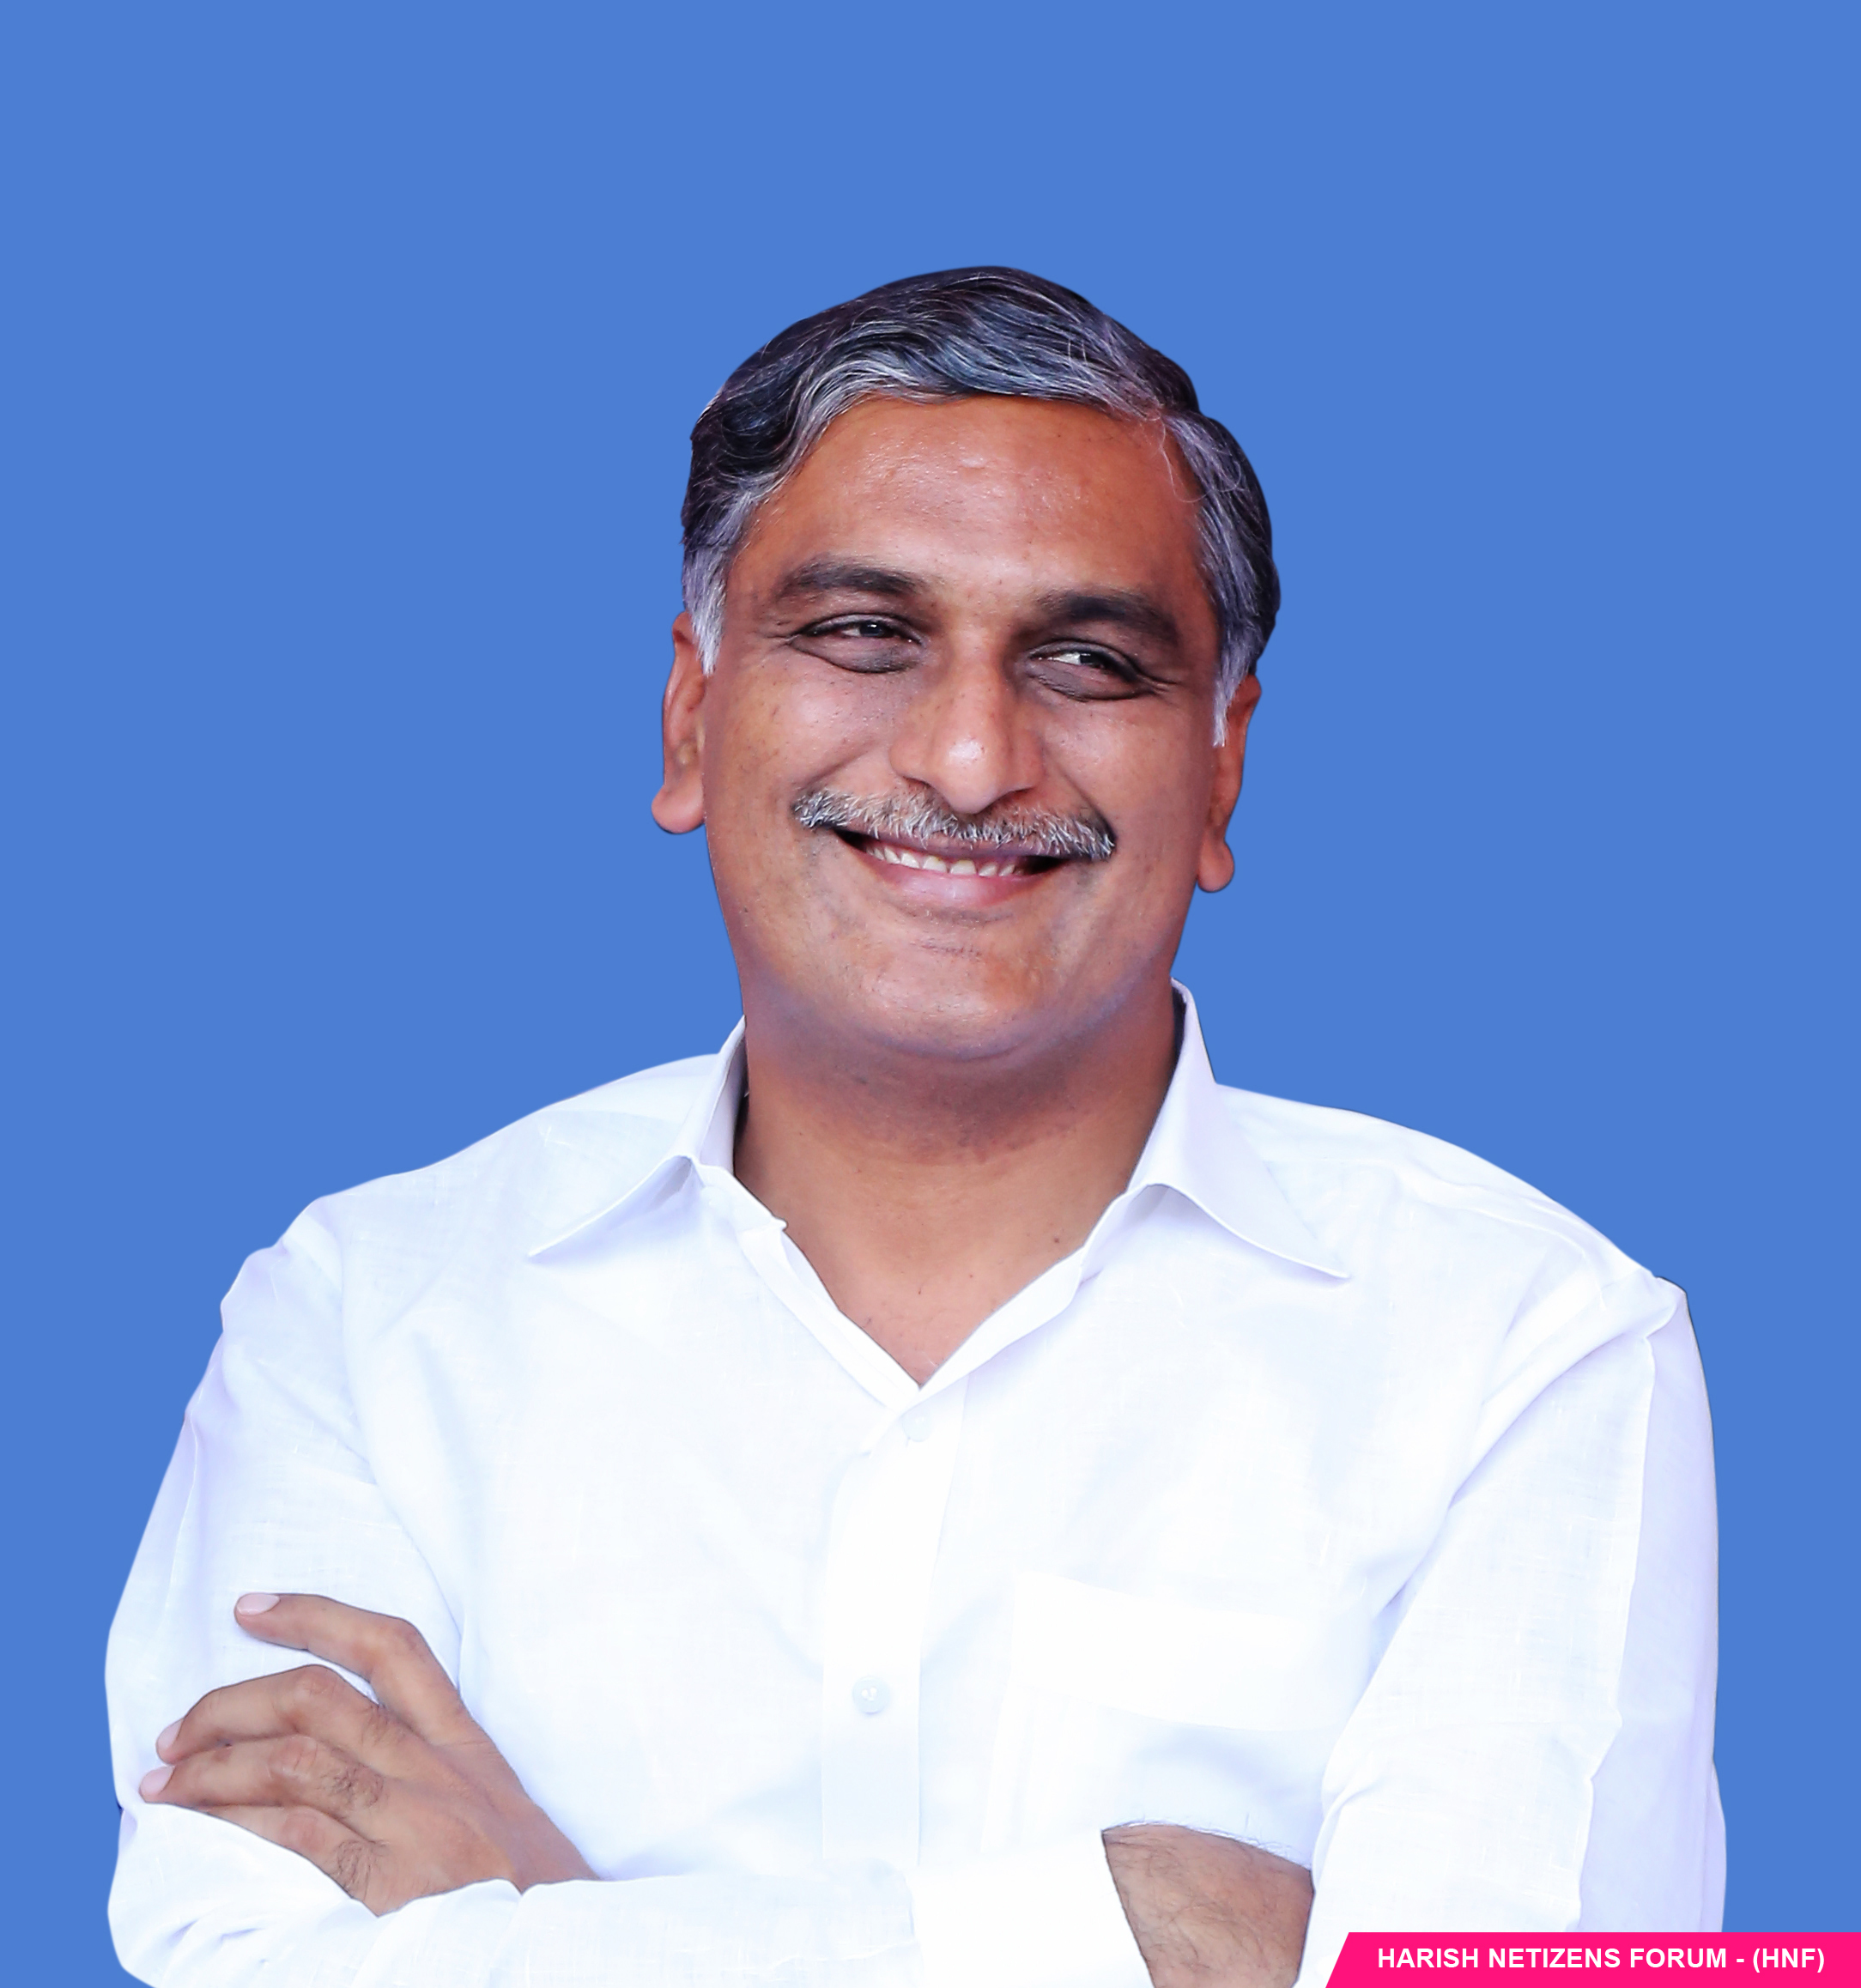 File:Harish Rao smile jpg - Wikimedia Commons